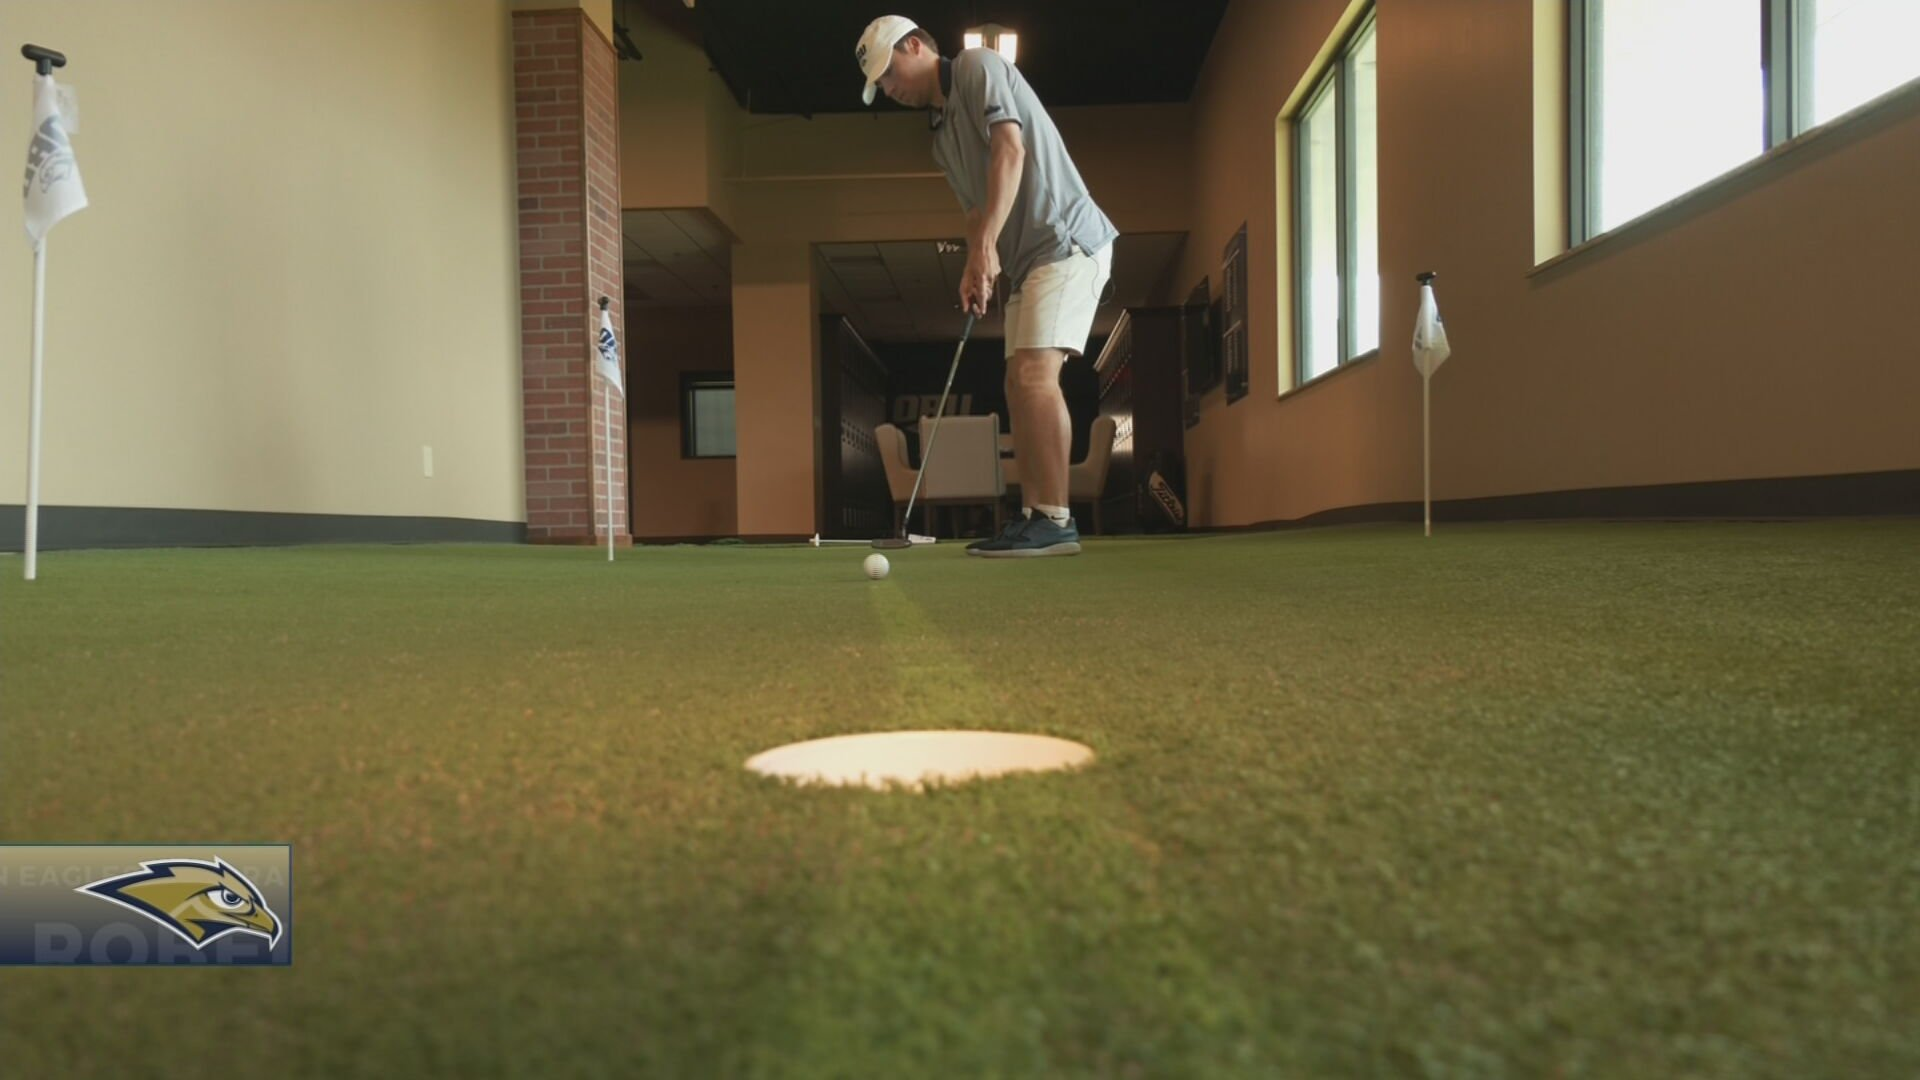 ORU's Howes, Reigning League Champion, Tees Off In NCAA Regionals